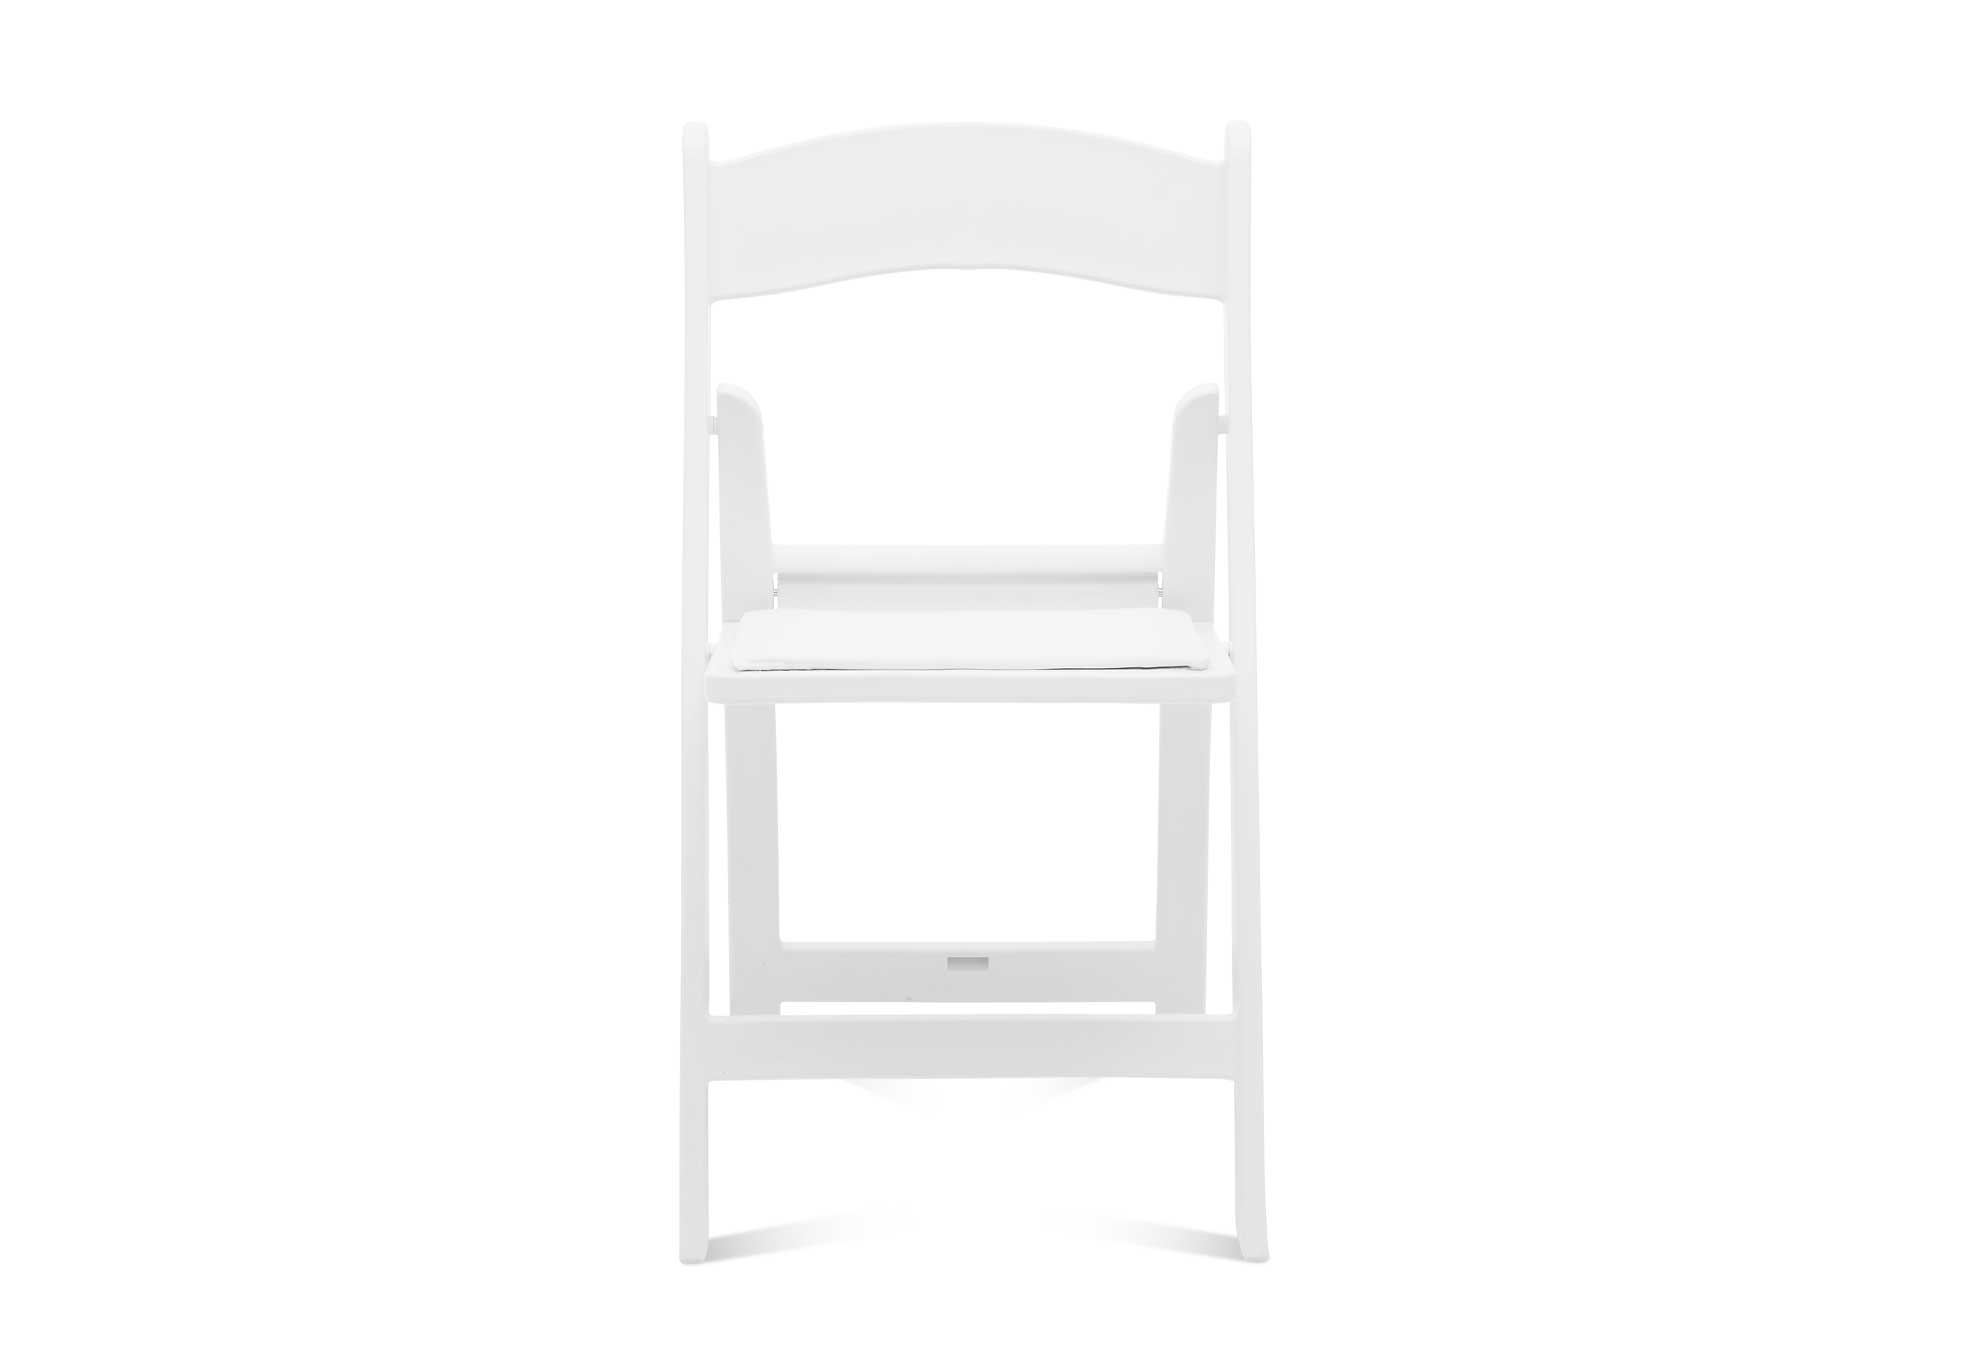 silk-estate-marquee-weddings-and-events-styling-and-hire-furniture-chairs-bella-chair-hero